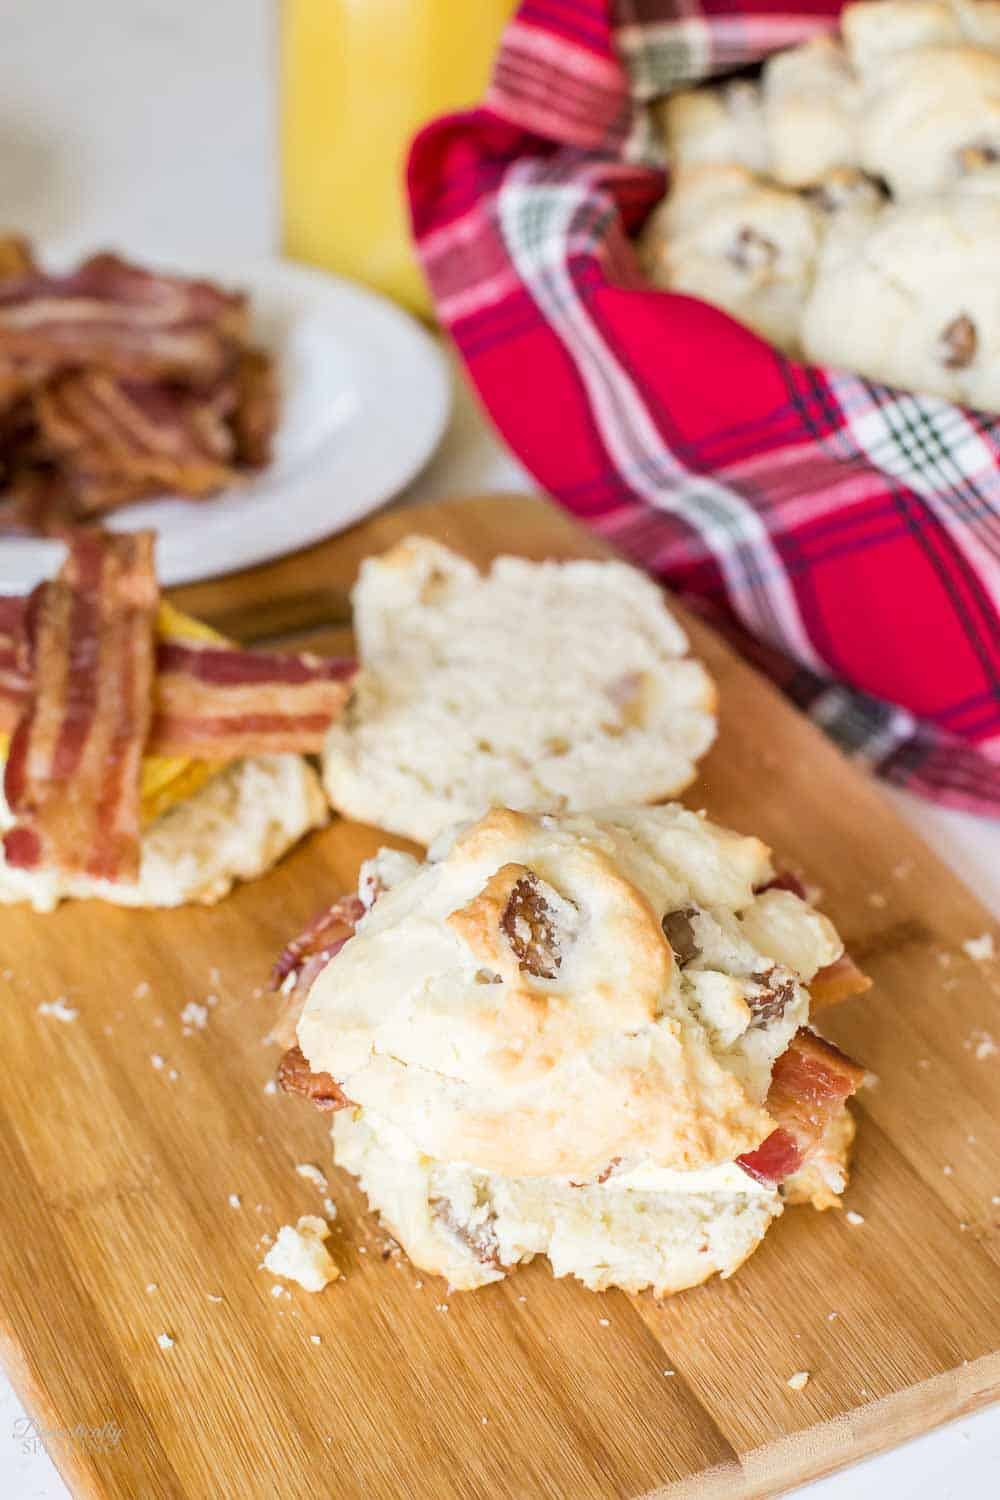 Sausage Biscuit Breakfast Sandwiches on a cutting board.